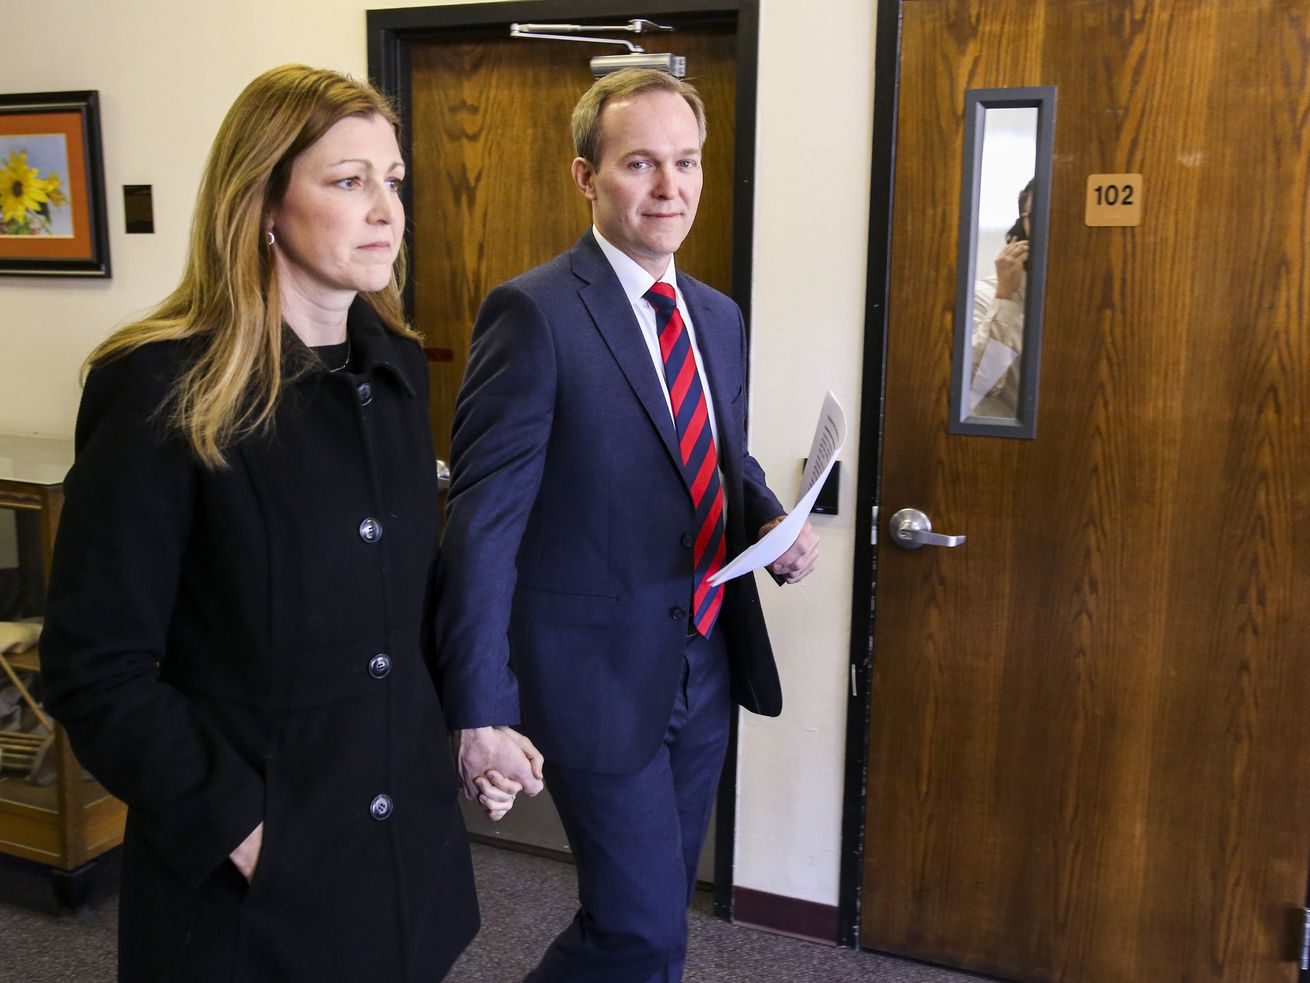 Utah Rep. Ben McAdams, D-Utah, right, and his wife Julie McAdams leave Murray City Hall after McAdams announced he will vote yes to impeach President Donald Trump during a press conference in Murray City Hall in Murray on Monday, Dec. 16, 2019. During McAdams' brief statement, he admonished both political parties for their unwillingness to cross party lines,